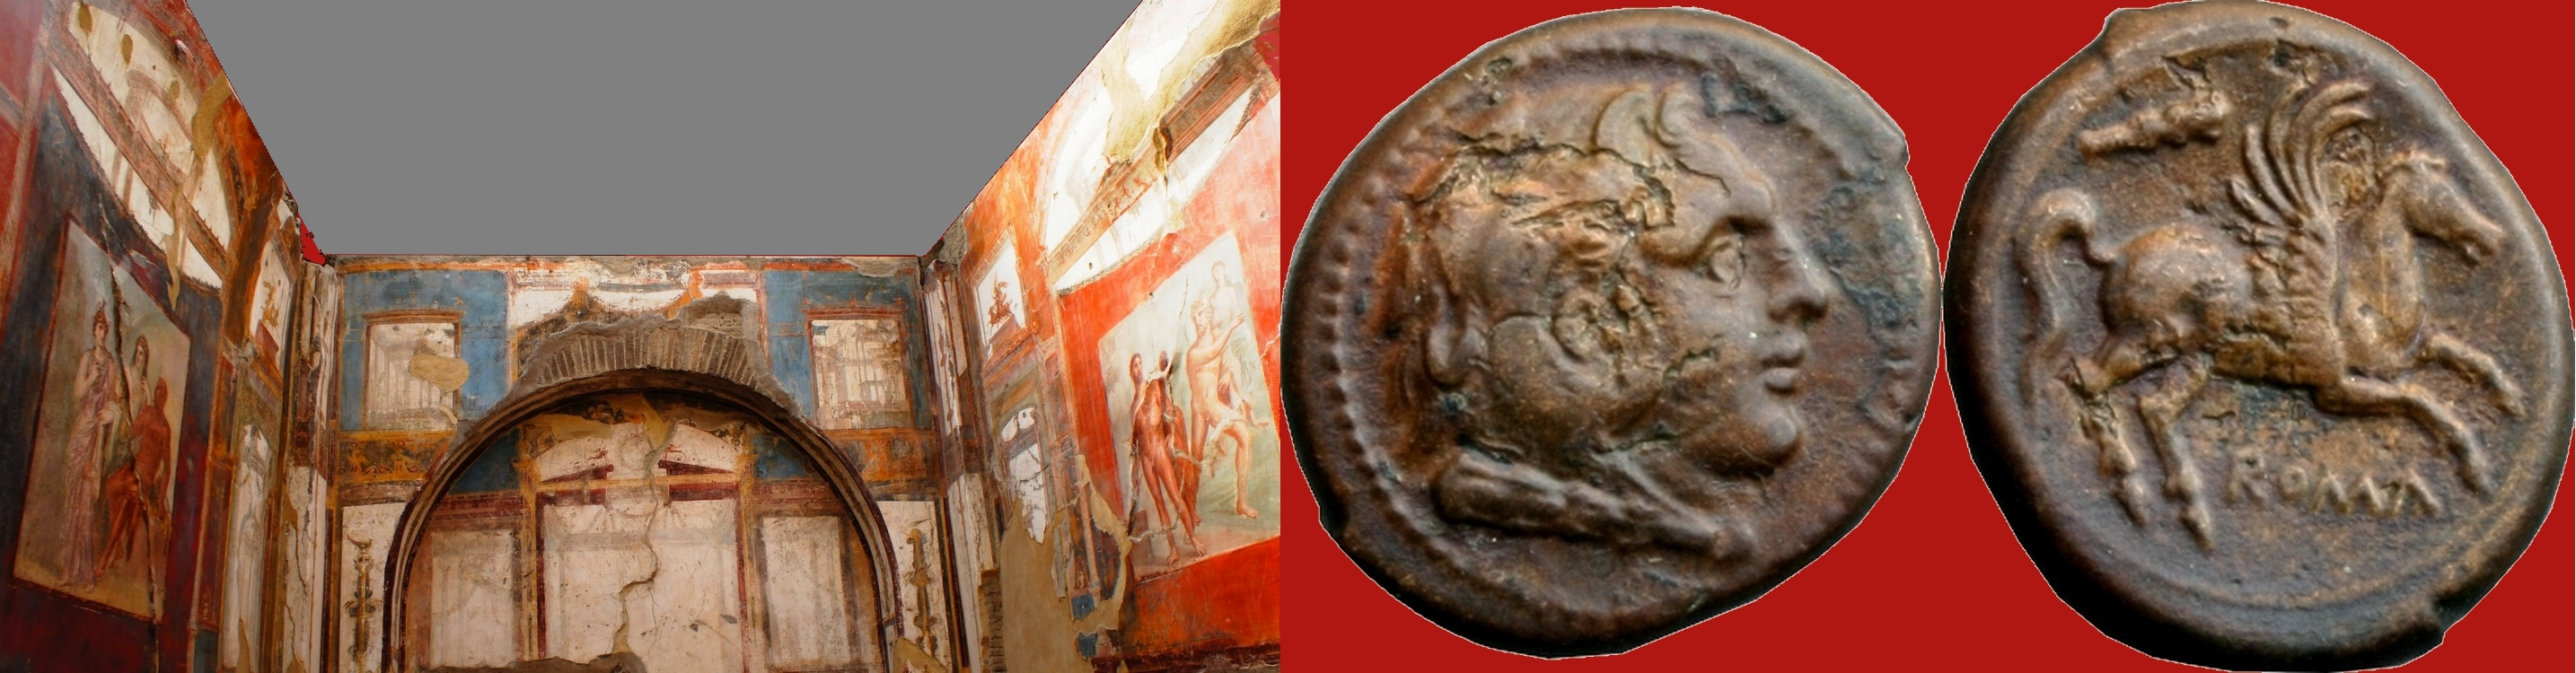 27/3 coin of the Roman Republic 230BC with Hercules, Pegasus and Herculean club, and College of Augustales Herculaneum with frescos of myths of Hercules